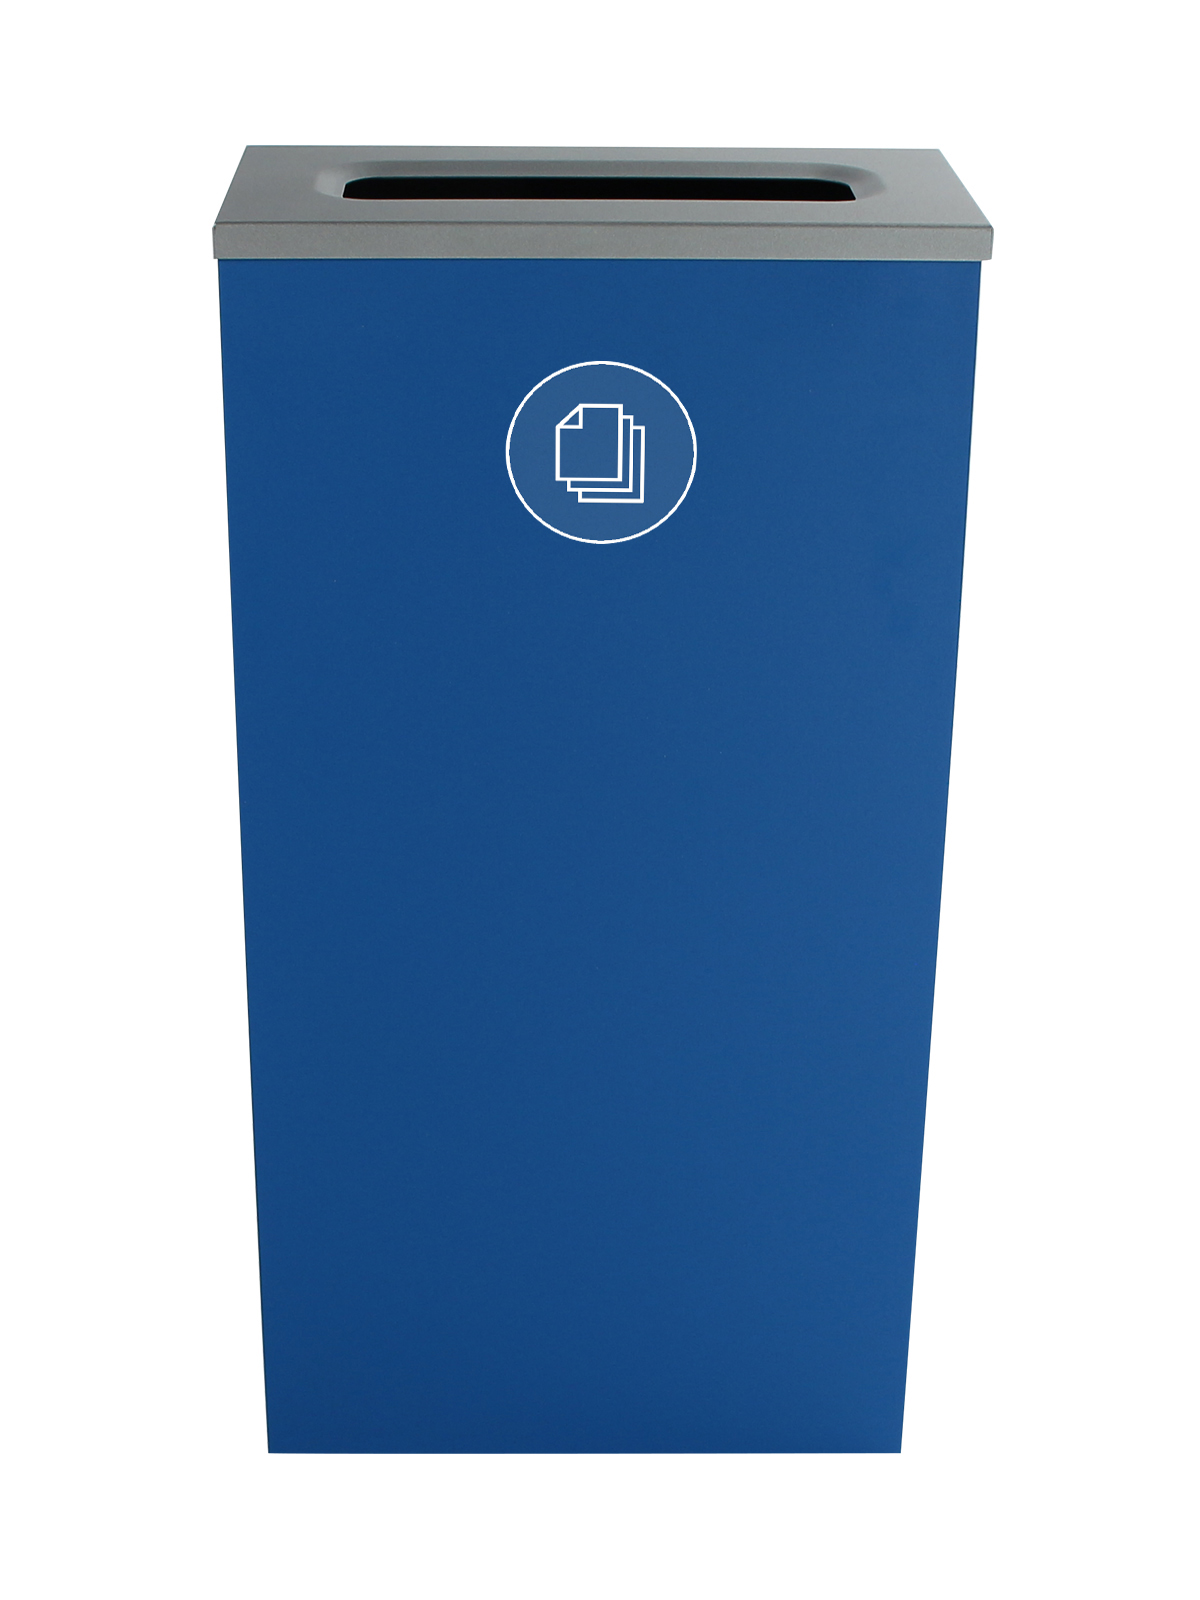 SPECTRUM - Single - Cube Slim - Paper - Slot - Blue